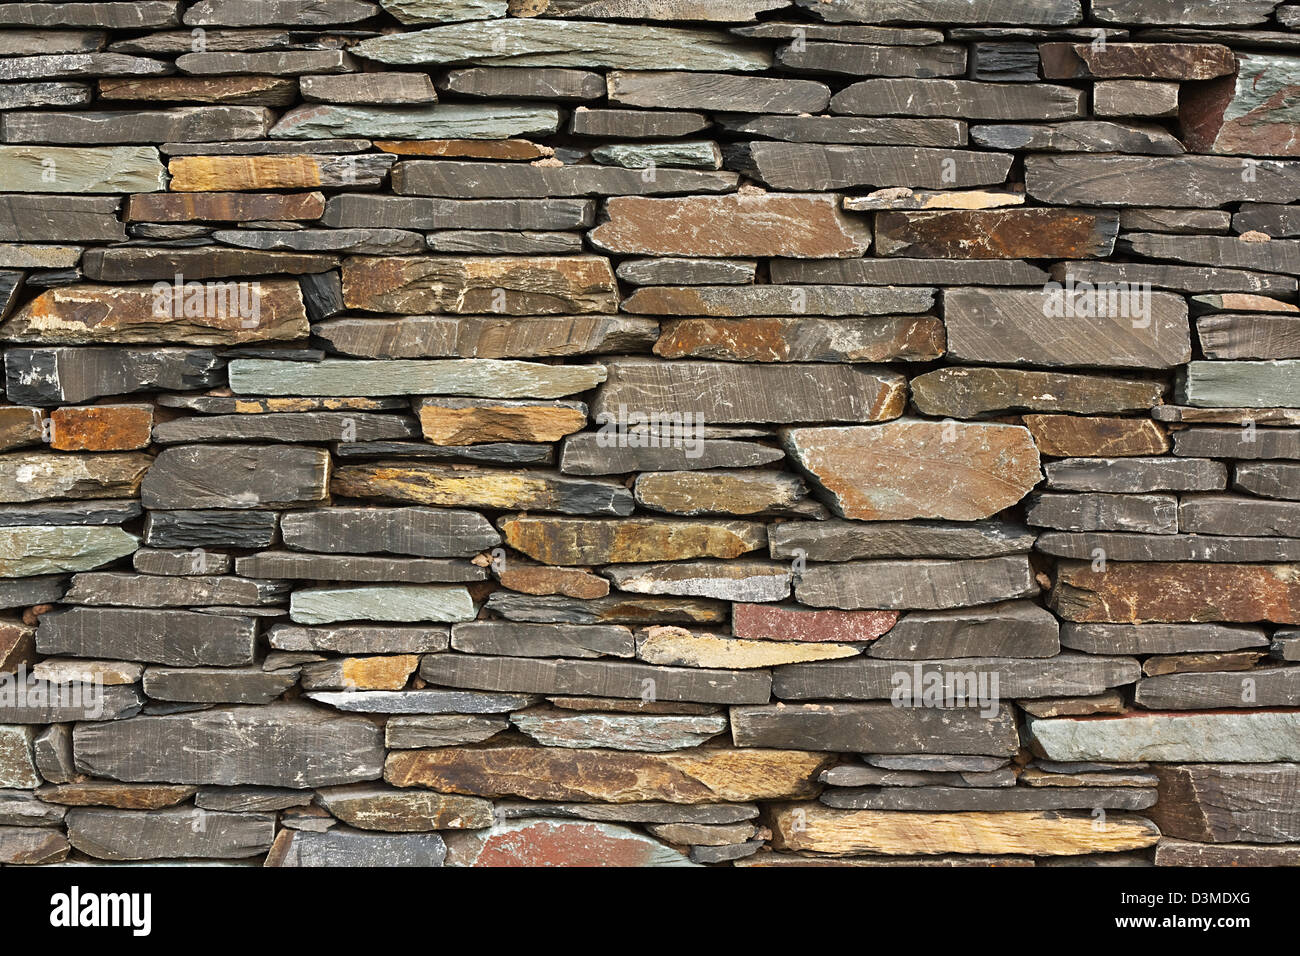 newly built dry stone wall architectural feature wall on large building good for backgrounds or wallpaper - Stock Image